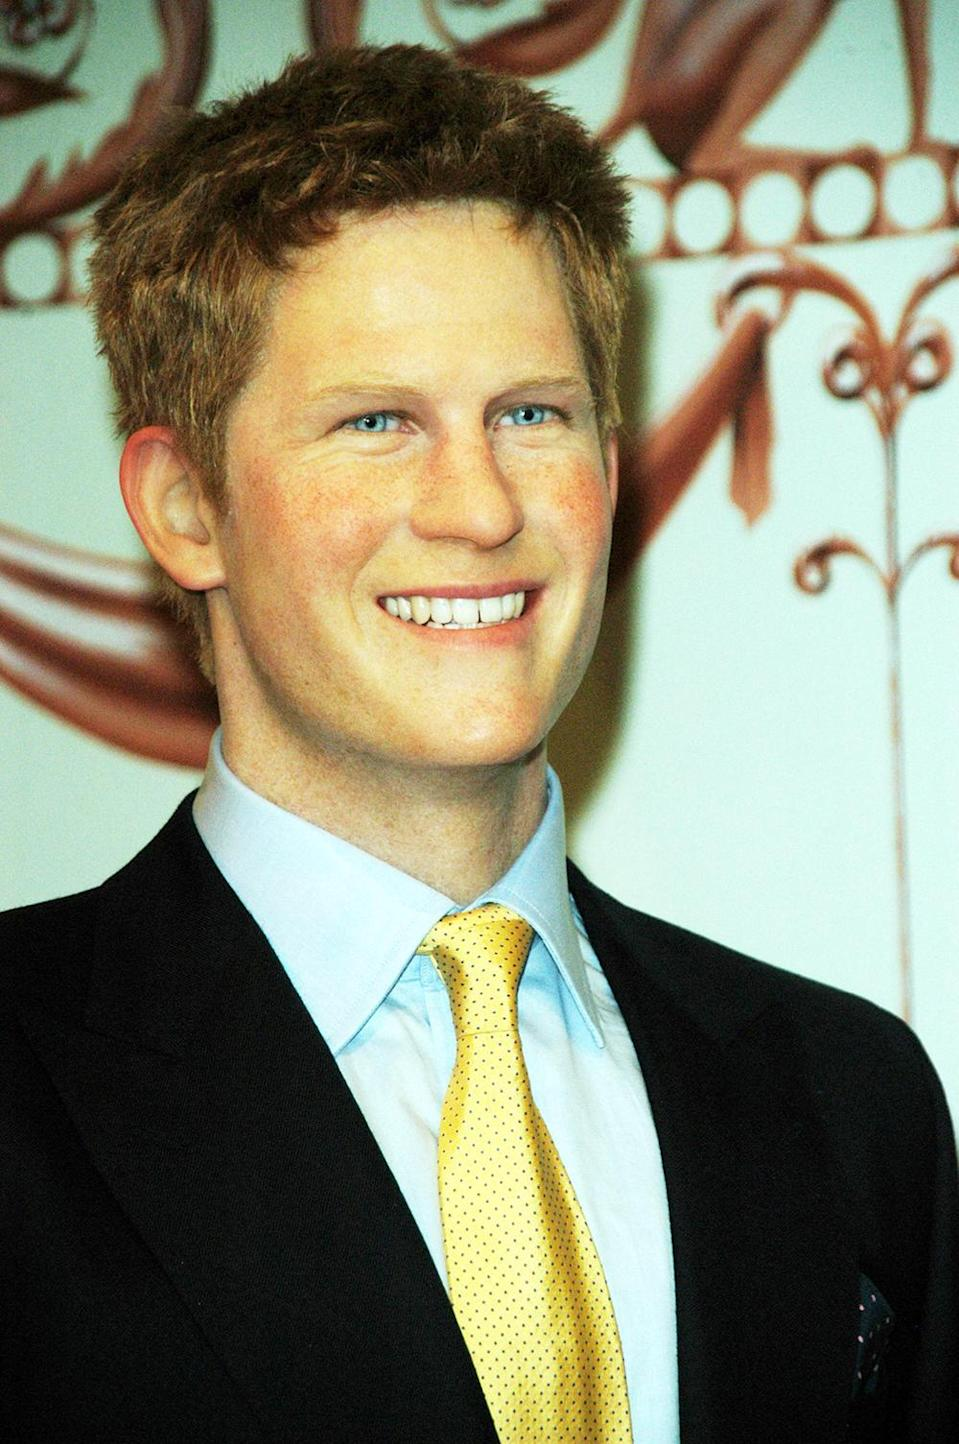 <p>Madame Tussauds London produced than less than impressive version of Prince Harry. Copyright: [Wenn] </p>